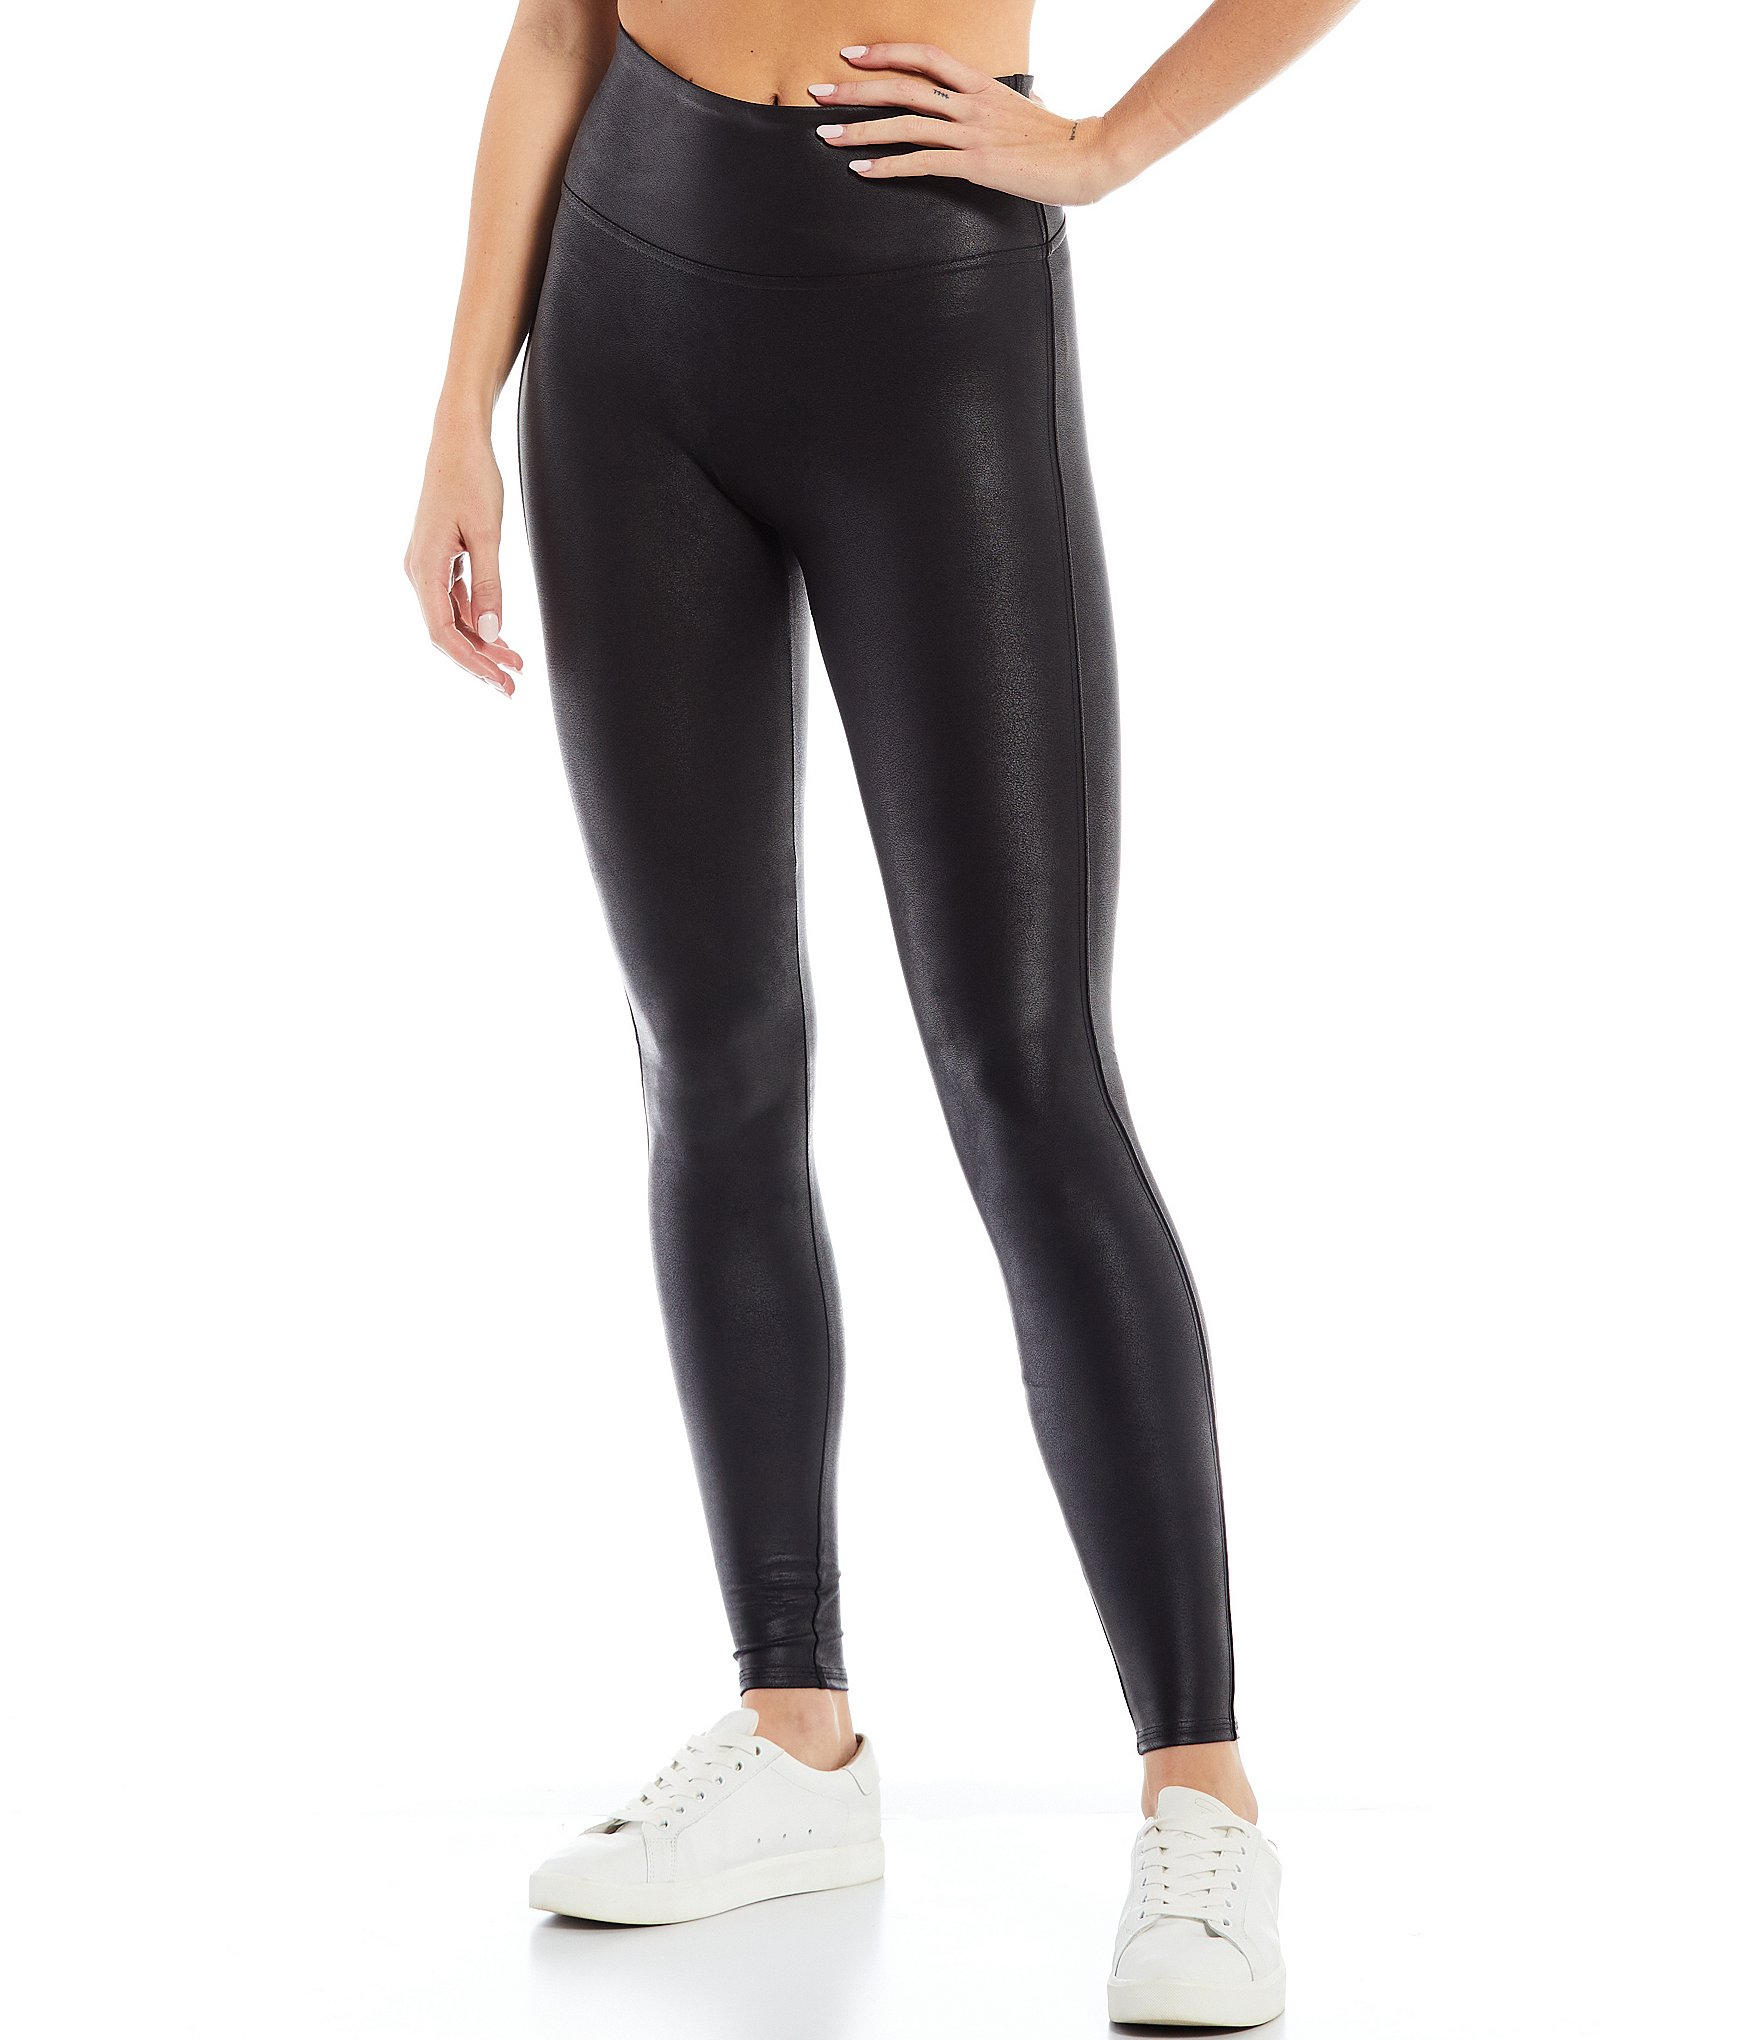 Spanx Faux Leather Leggings Dillard S